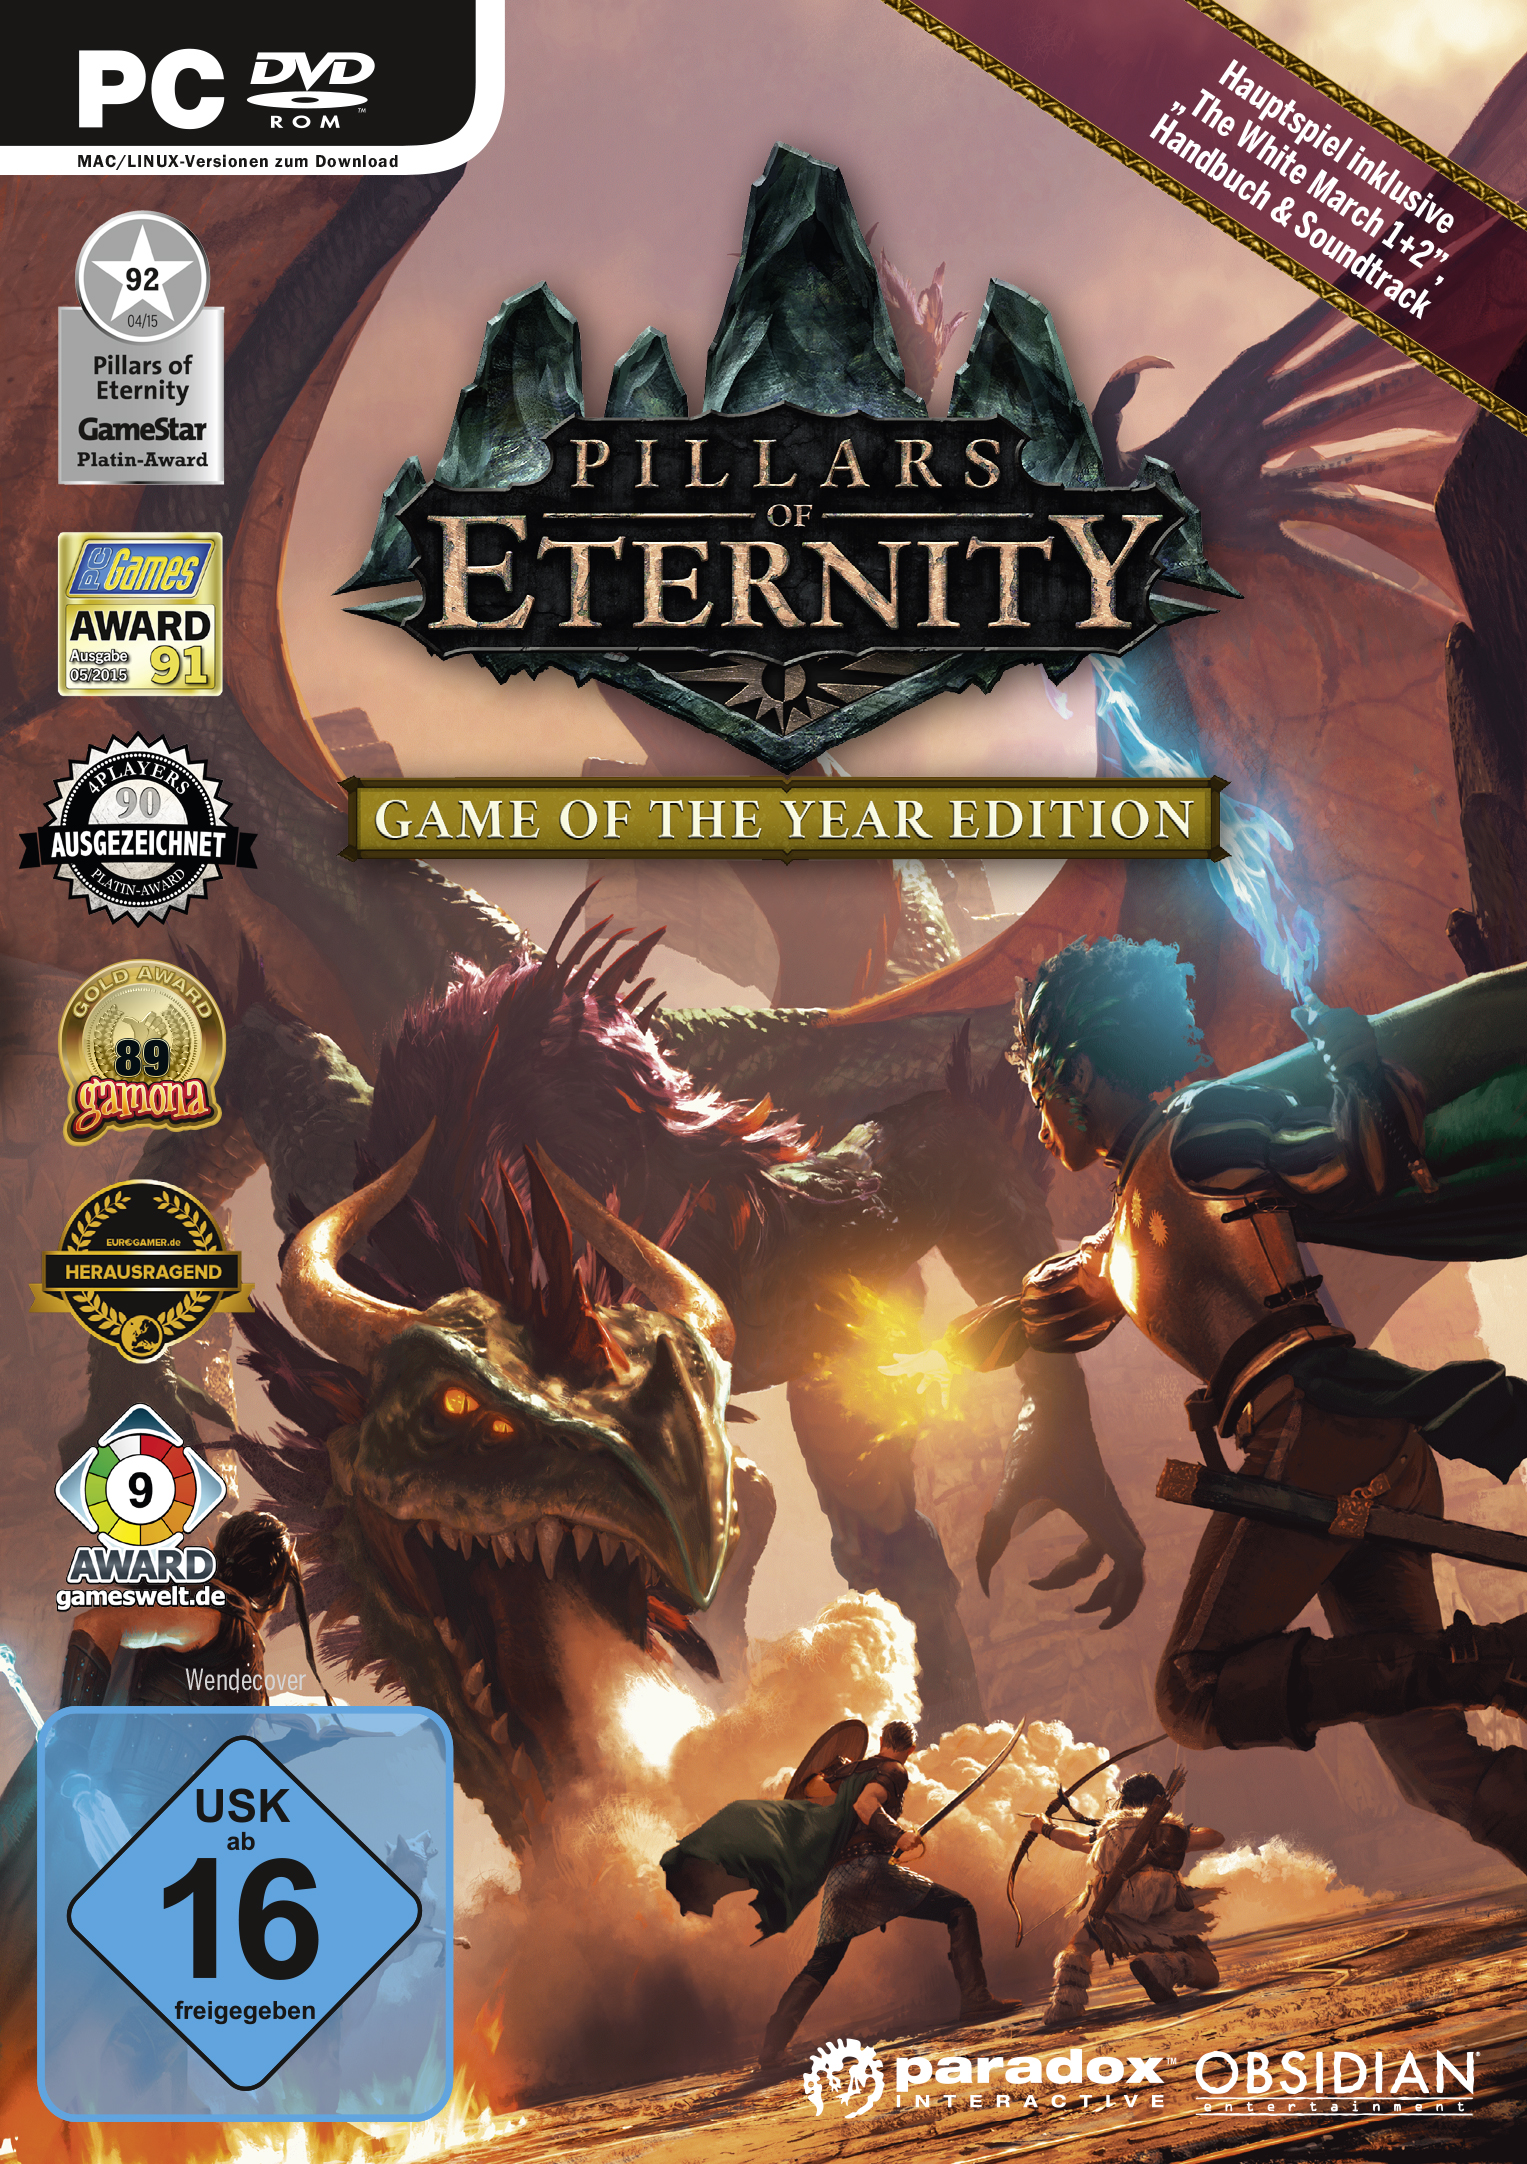 Box art - Pillars of Eternity